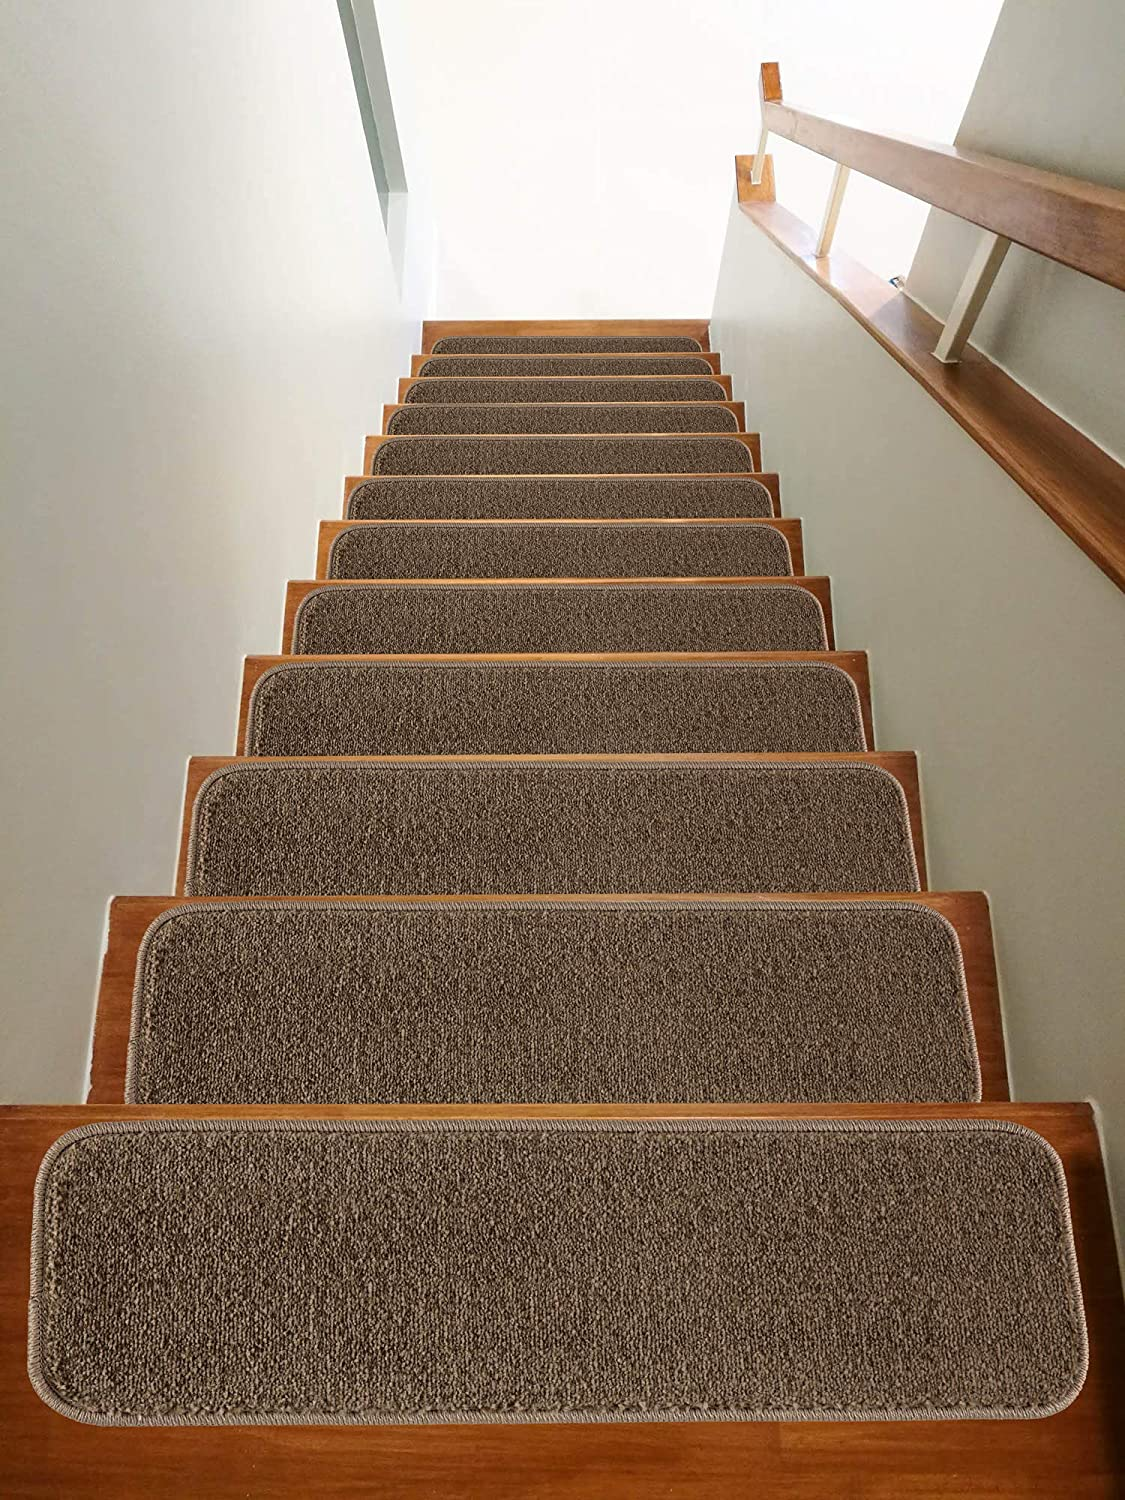 Gray Solo Collection 8.5 inches x 30 inches ModArte Set of 7 Rubber Backing Non-Slip Stair Treads Mod-Arte Modern /&Contemporary Solid Colors